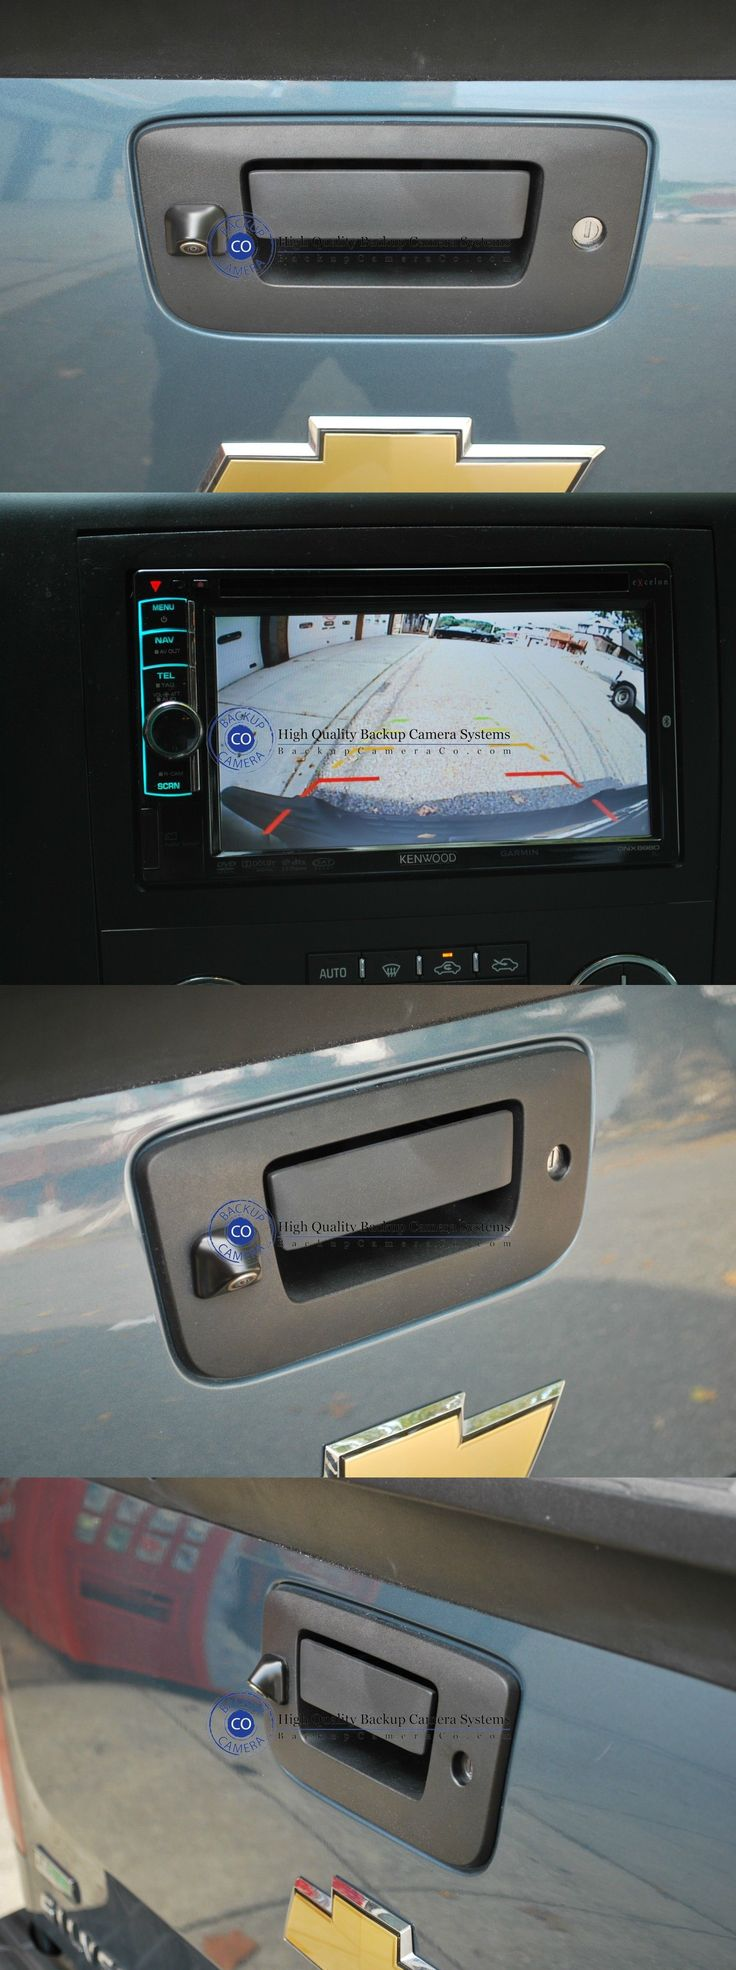 Rear View Monitors Cams and Kits: Tailgate Handle Backup Camera Kit For 2007-2014 Chevy Silverado And Gmc Sierra -> BUY IT NOW ONLY: $60.44 on eBay!